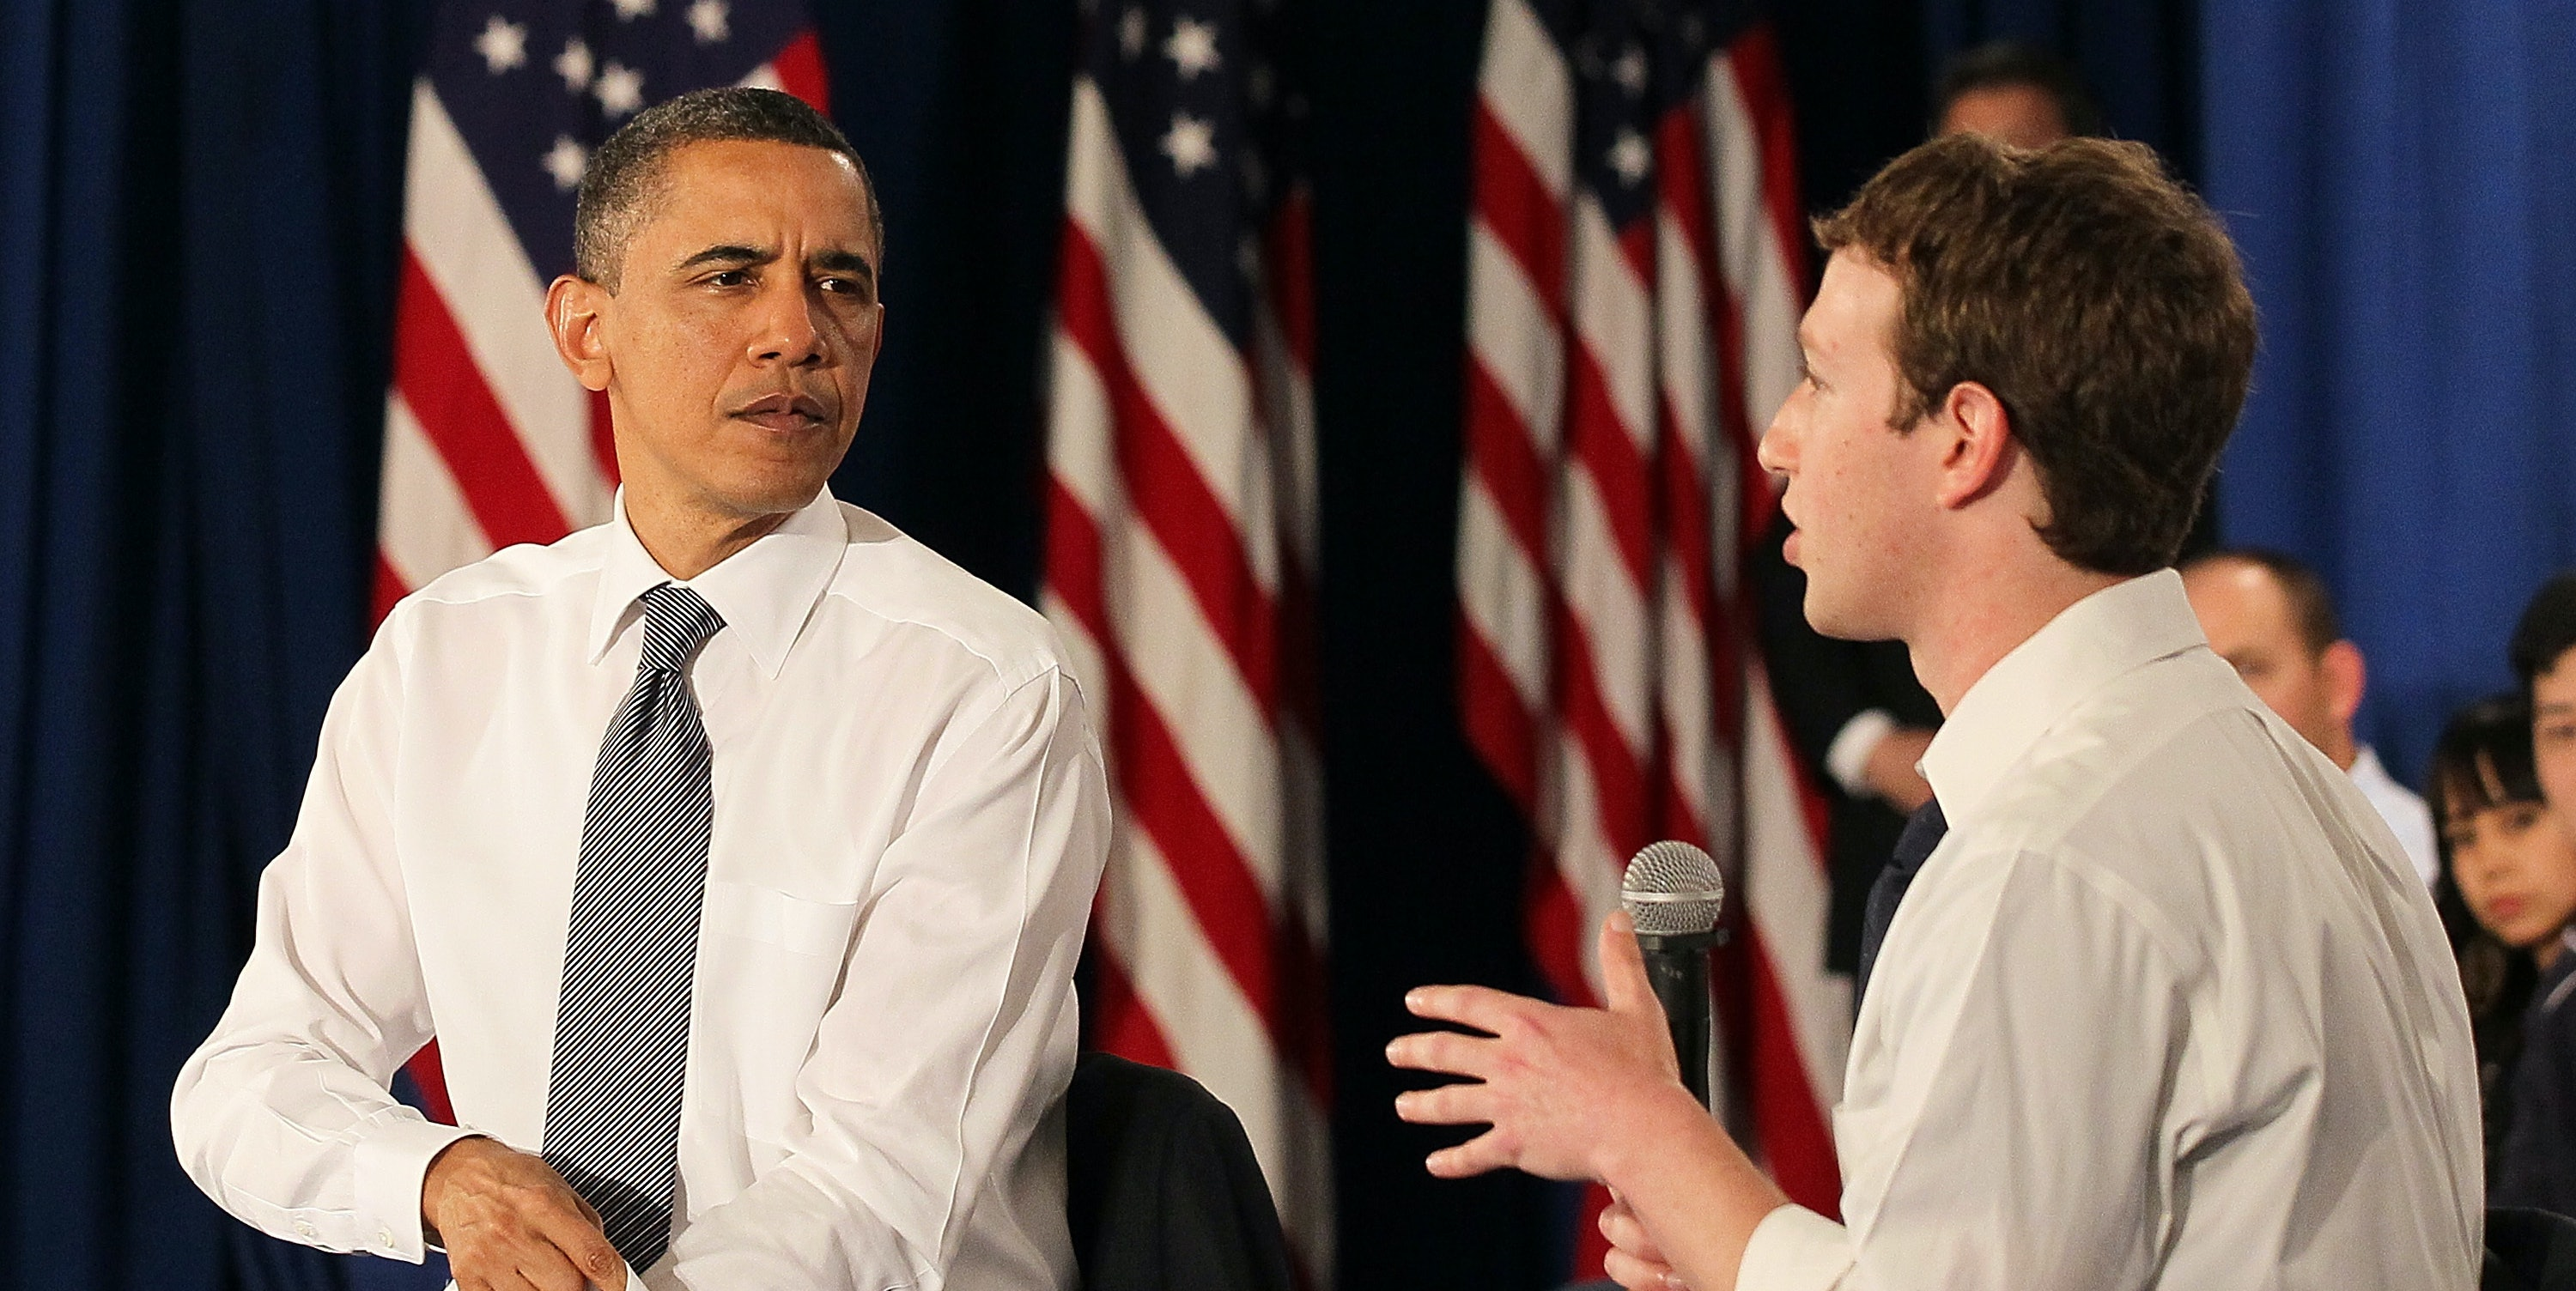 President Barack Obama talks with Facebook CEO Mark Zuckerberg during a town hall style meeting at Facebook headquarters on April 20, 2011, in Palo Alto, California. Obama held the Facebook town hall to answer questions about the deficit and the economy.